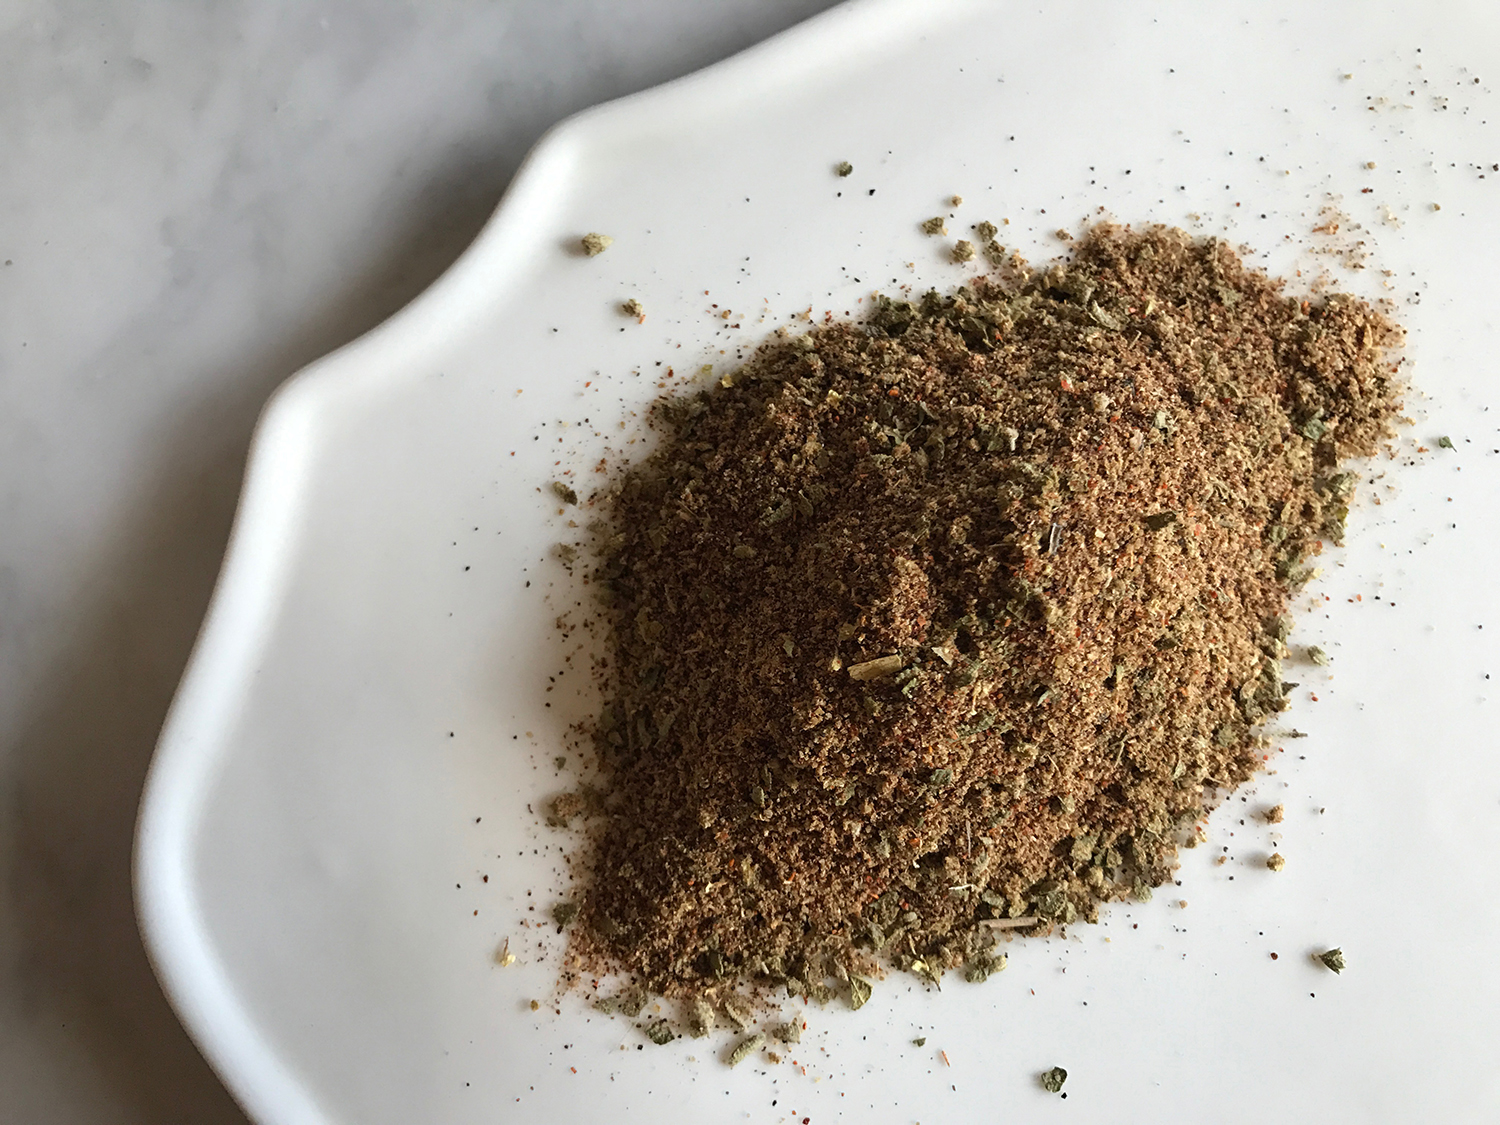 Making one's own spice blends is a wonderful way to ensure freshness and safety when dealing with any dietary intolerance.This gluten free and FODMAP Friendly taco seasoning mix by Posh Belly's Kitchen would be a wonderful enhancement for any homemade taco.